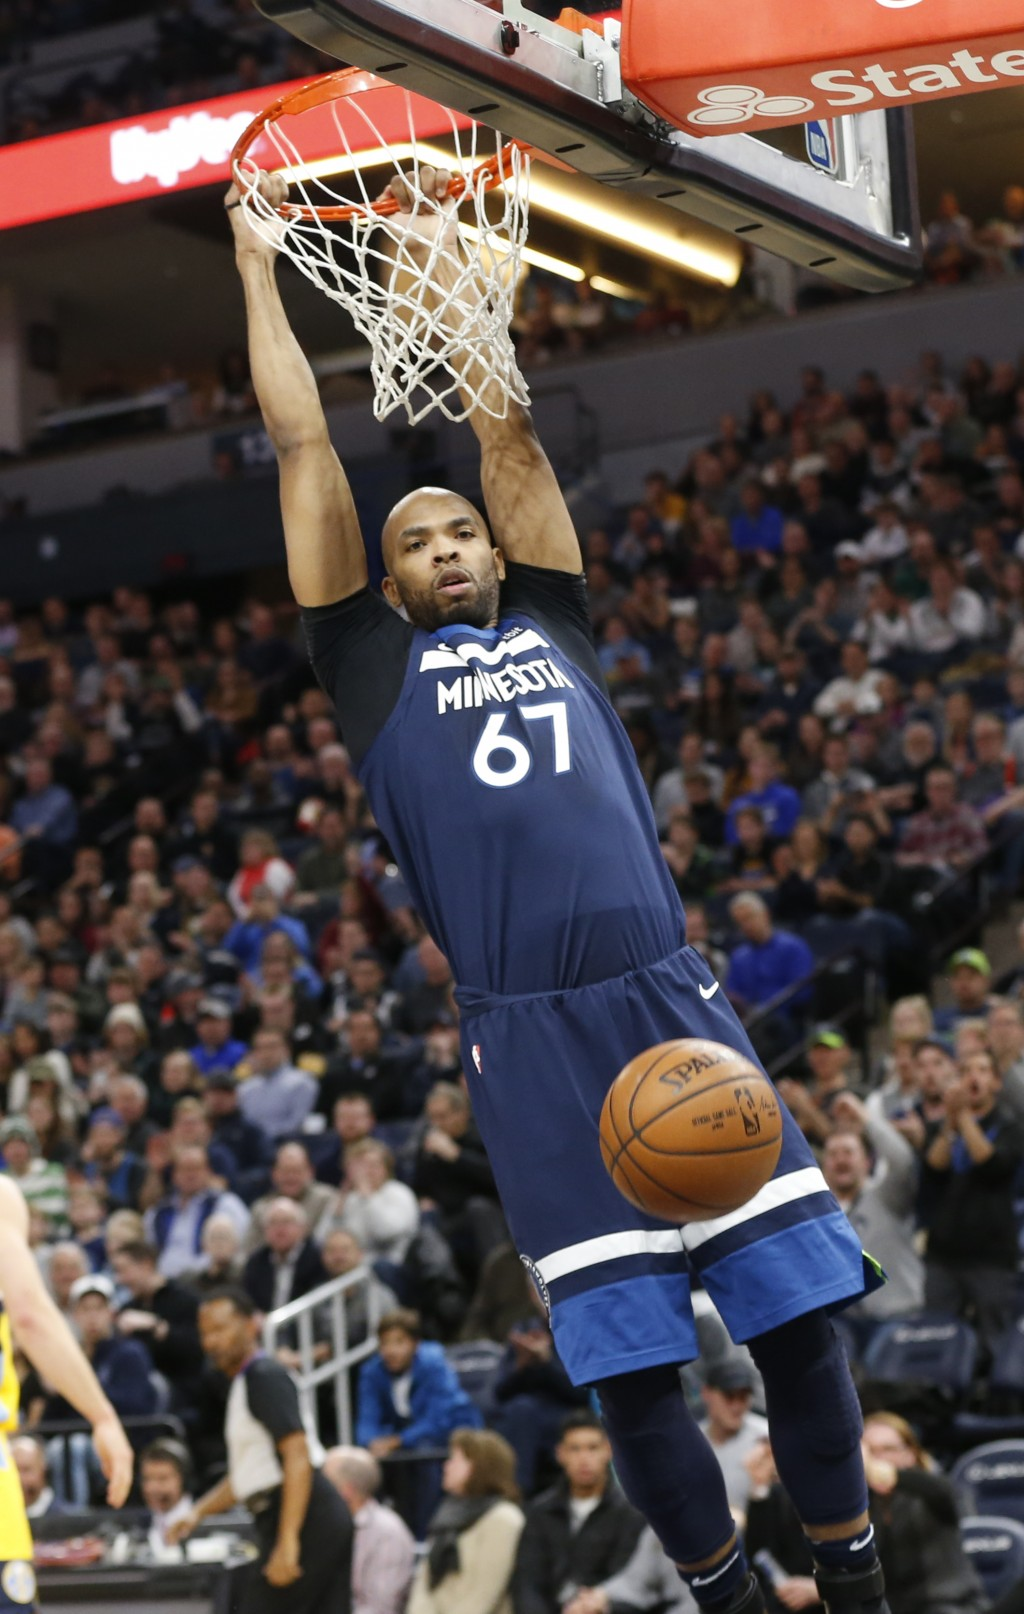 Minnesota Timberwolves' Taj Gibson dunks against the Denver Nuggets in the first half of an NBA basketball game, Wednesday, Dec. 27, 2017, in Minneapo...